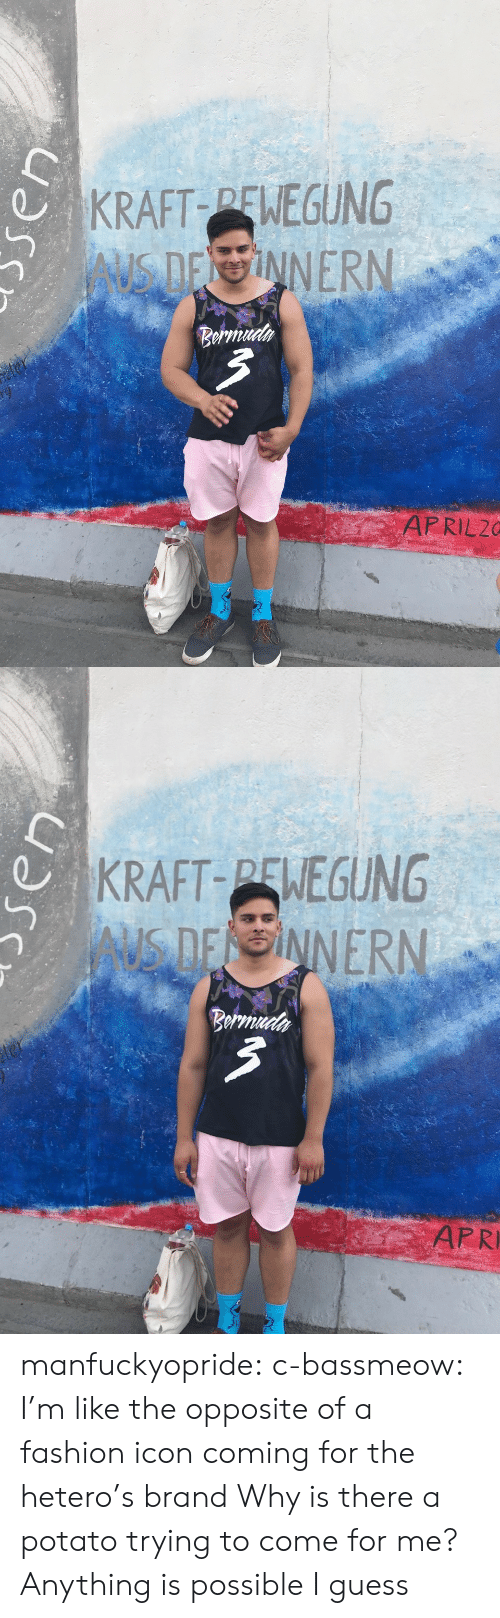 Come For Me: KRAFT PENEGUNG  Beru  APRIL20   KRAFT-PENEGUNG  AUS D  ER  ARRI manfuckyopride:  c-bassmeow: I'm like the opposite of a fashion icon coming for the hetero's brand  Why is there a potato trying to come for me? Anything is possible I guess